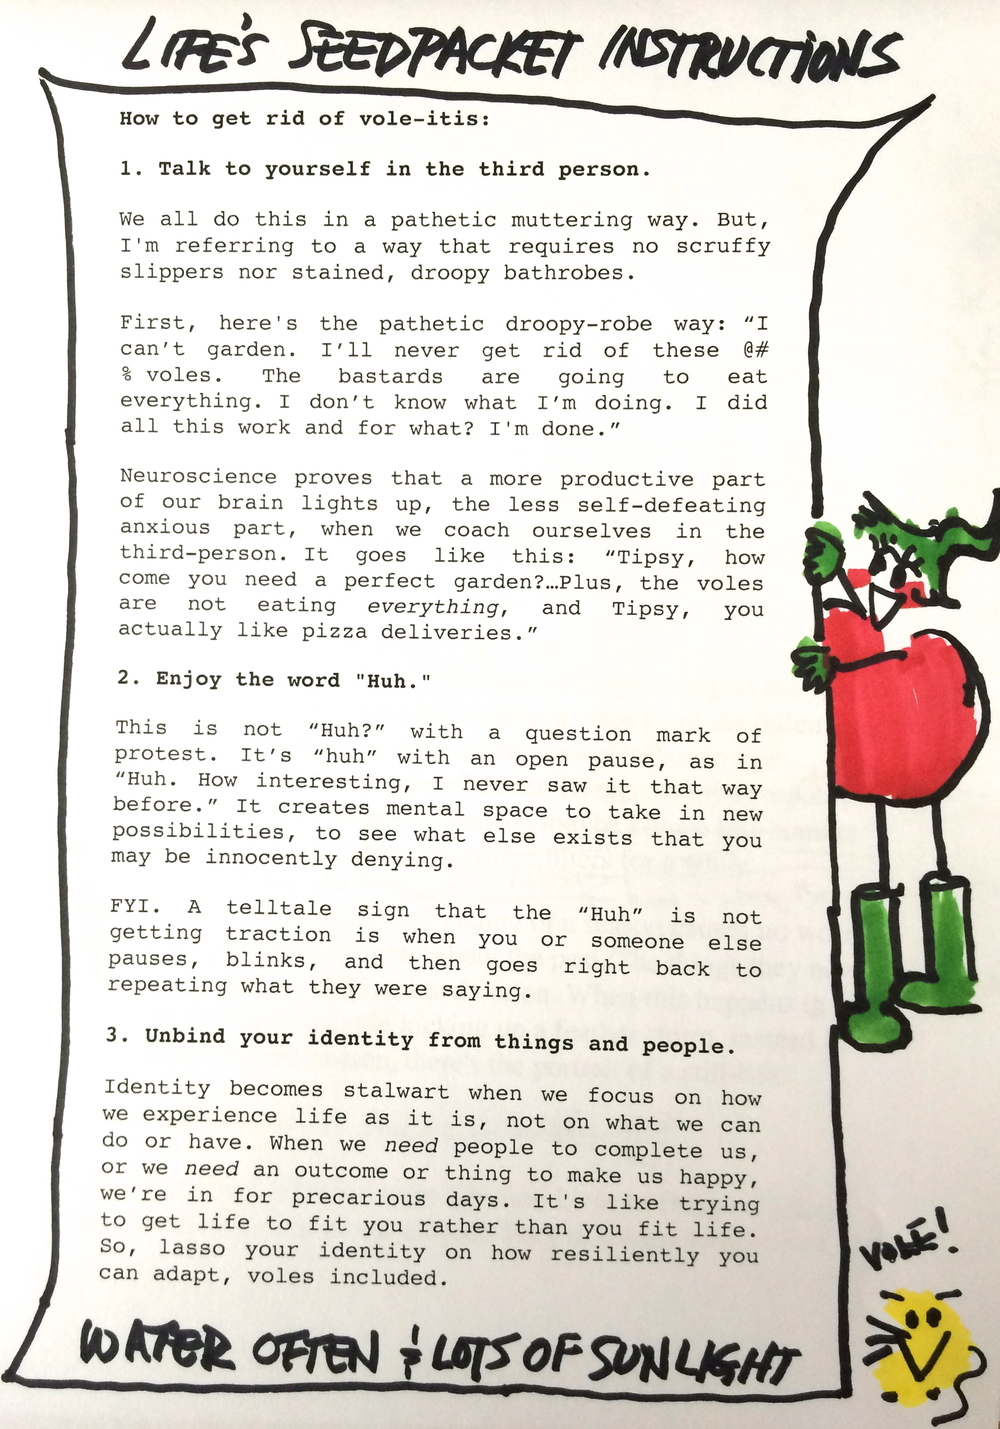 volitis seed packet tips at the tipsy tomato